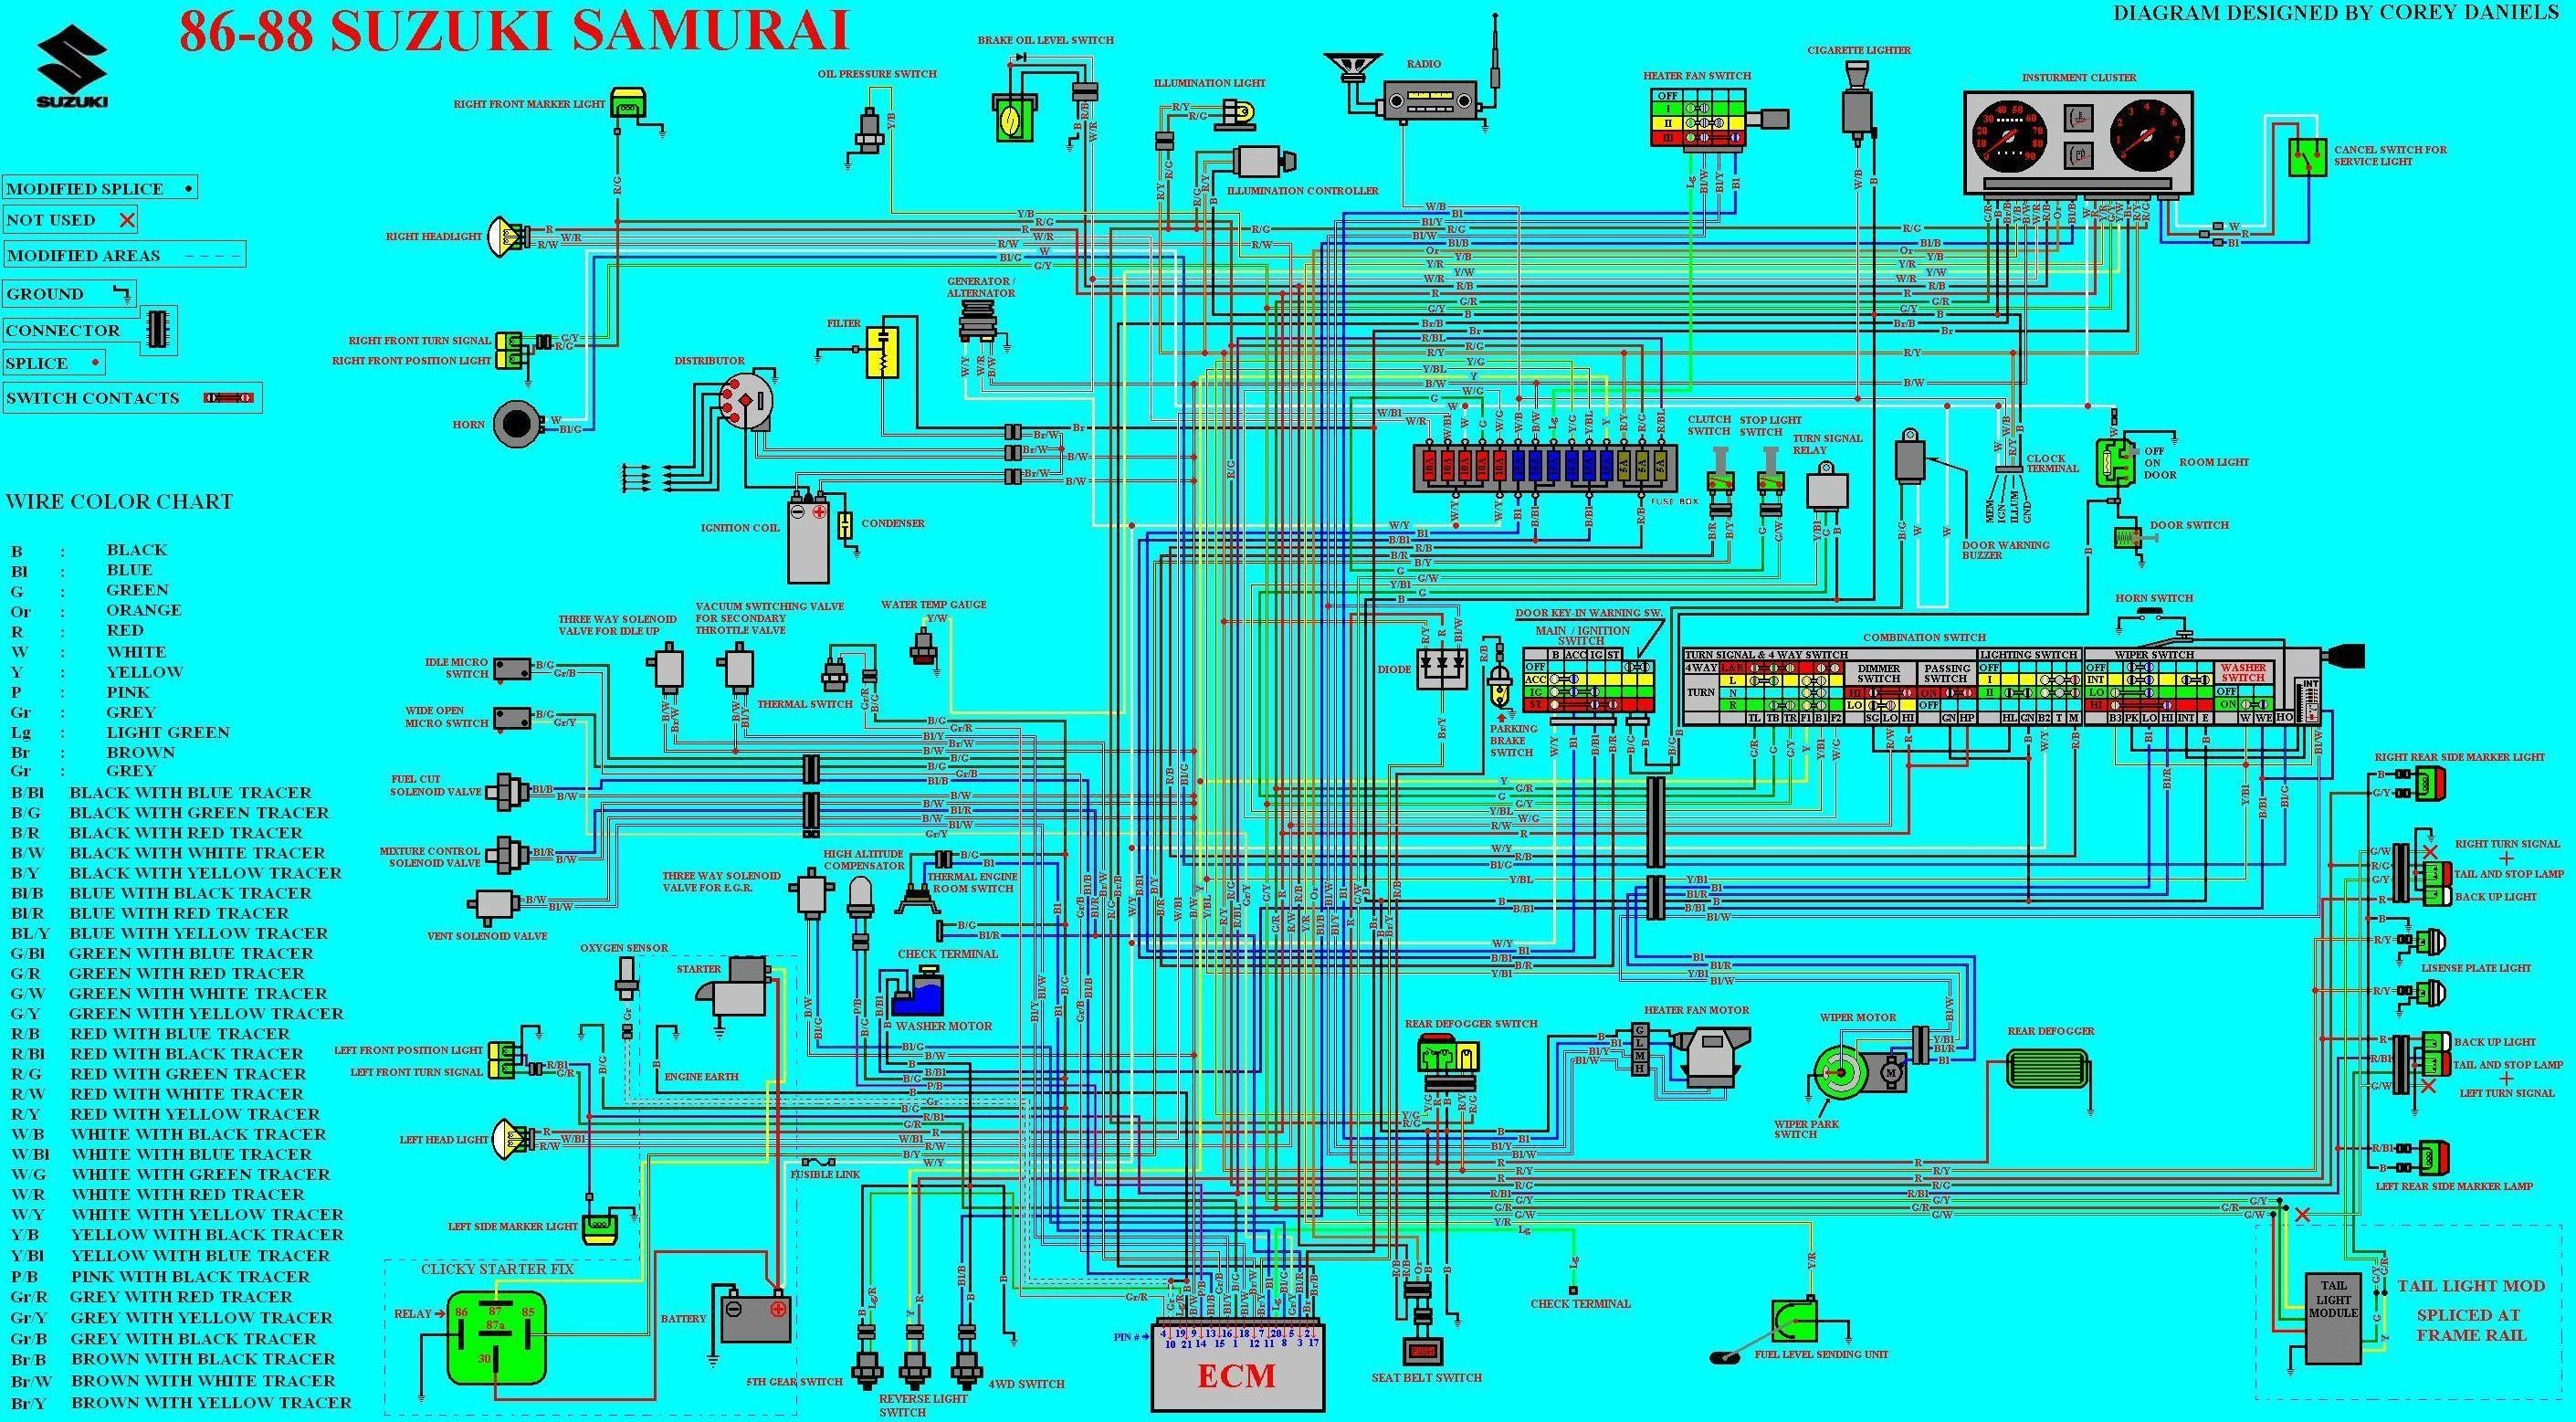 small resolution of unique vn alternator wiring diagram diagrams digramssample diagramimages wiringdiagramsample wiringdiagram